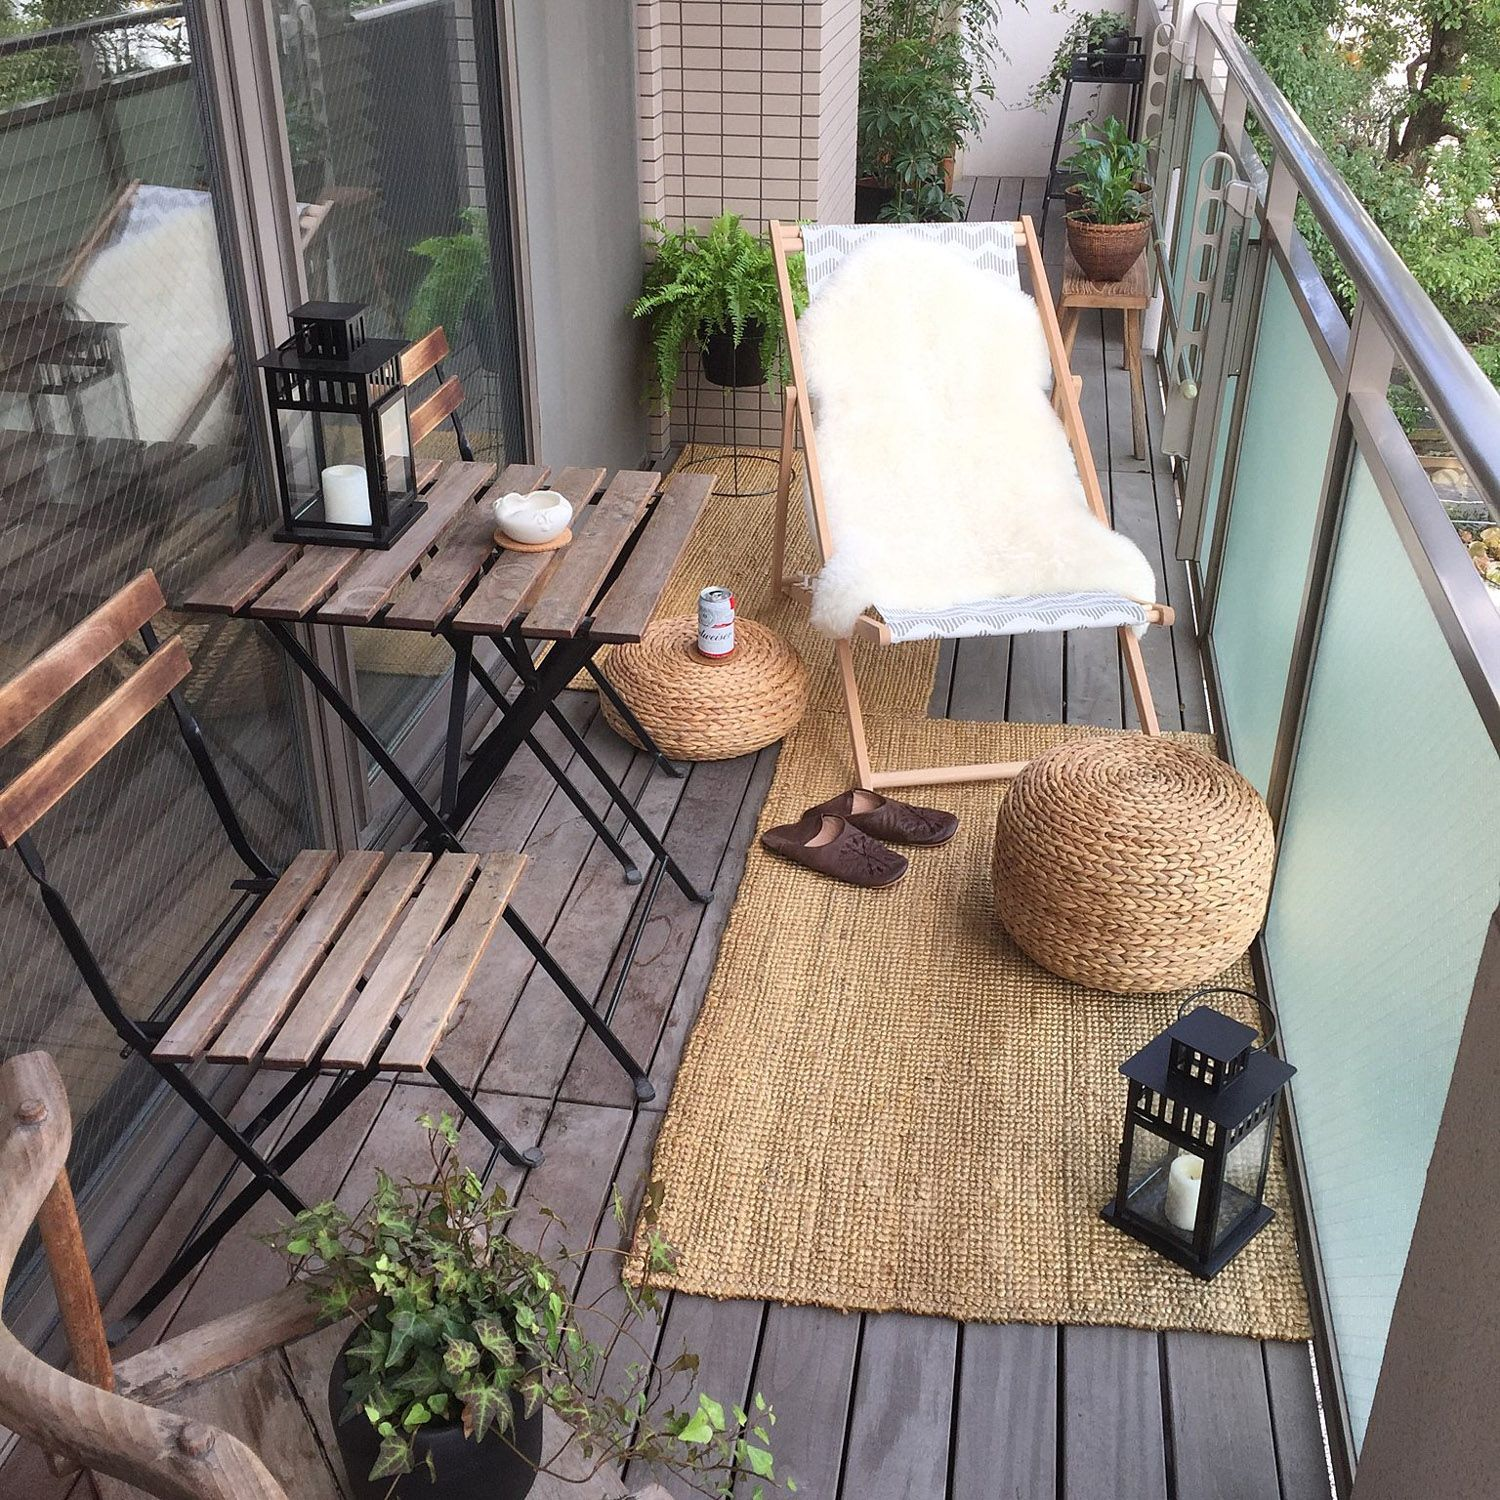 Inspiration for Small Apartment Balconies in the City -   15 plants Balcony house ideas